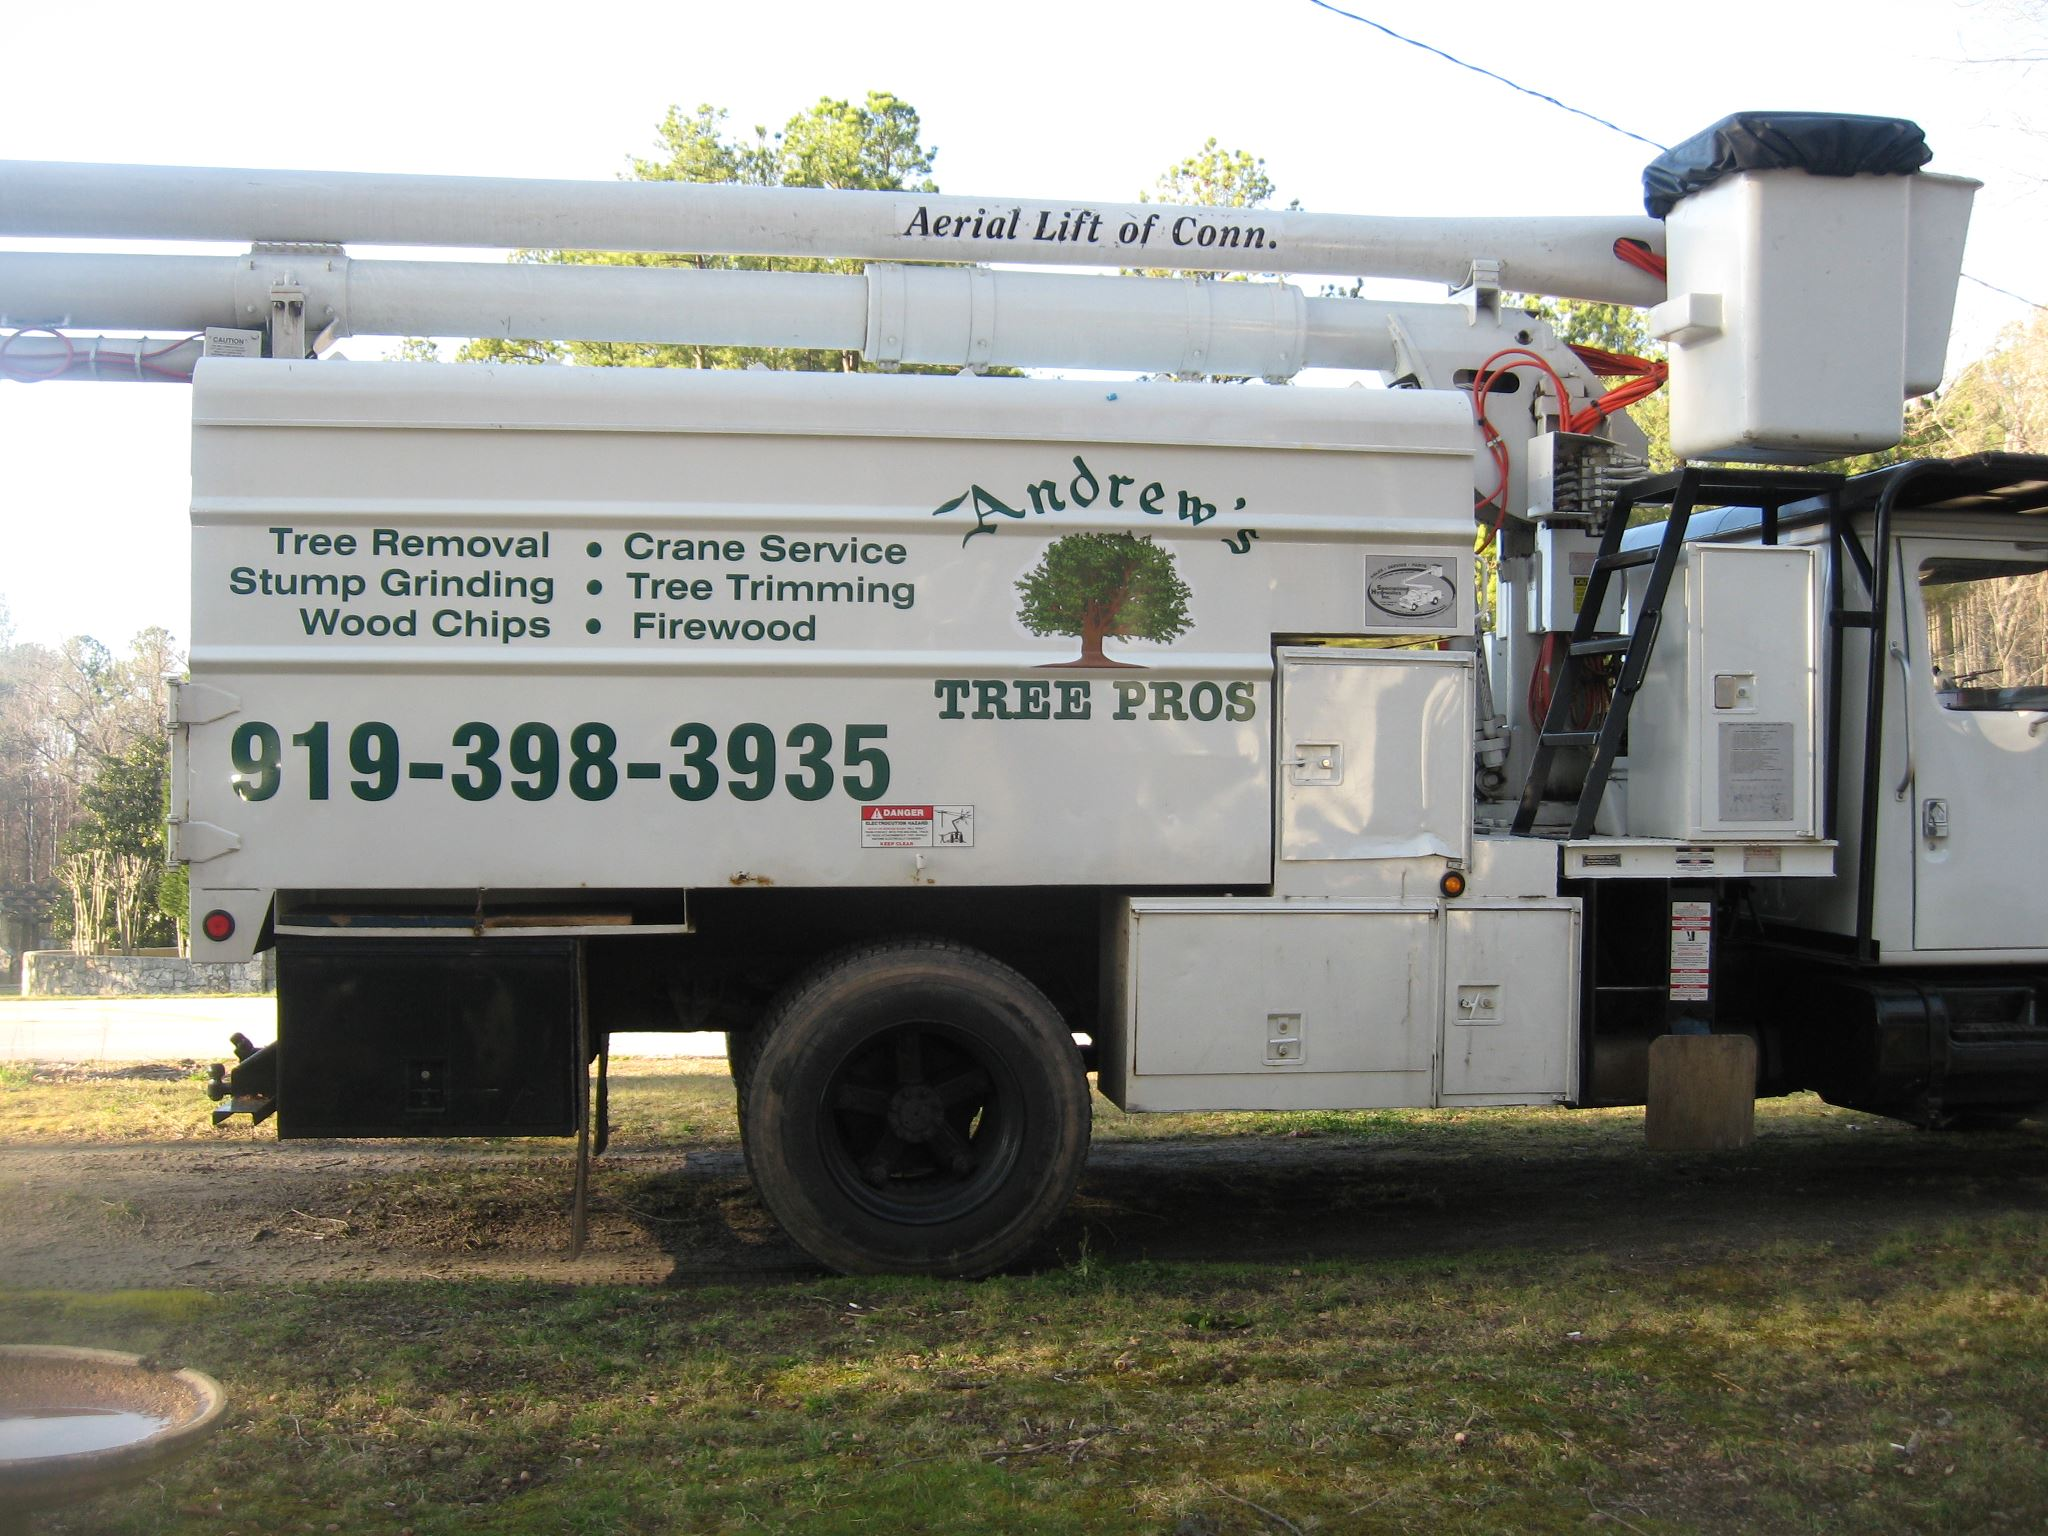 24 - 7 Emergency Tree and Crane Service for Raleigh, Durham, Wake Forest and surrounding areas.